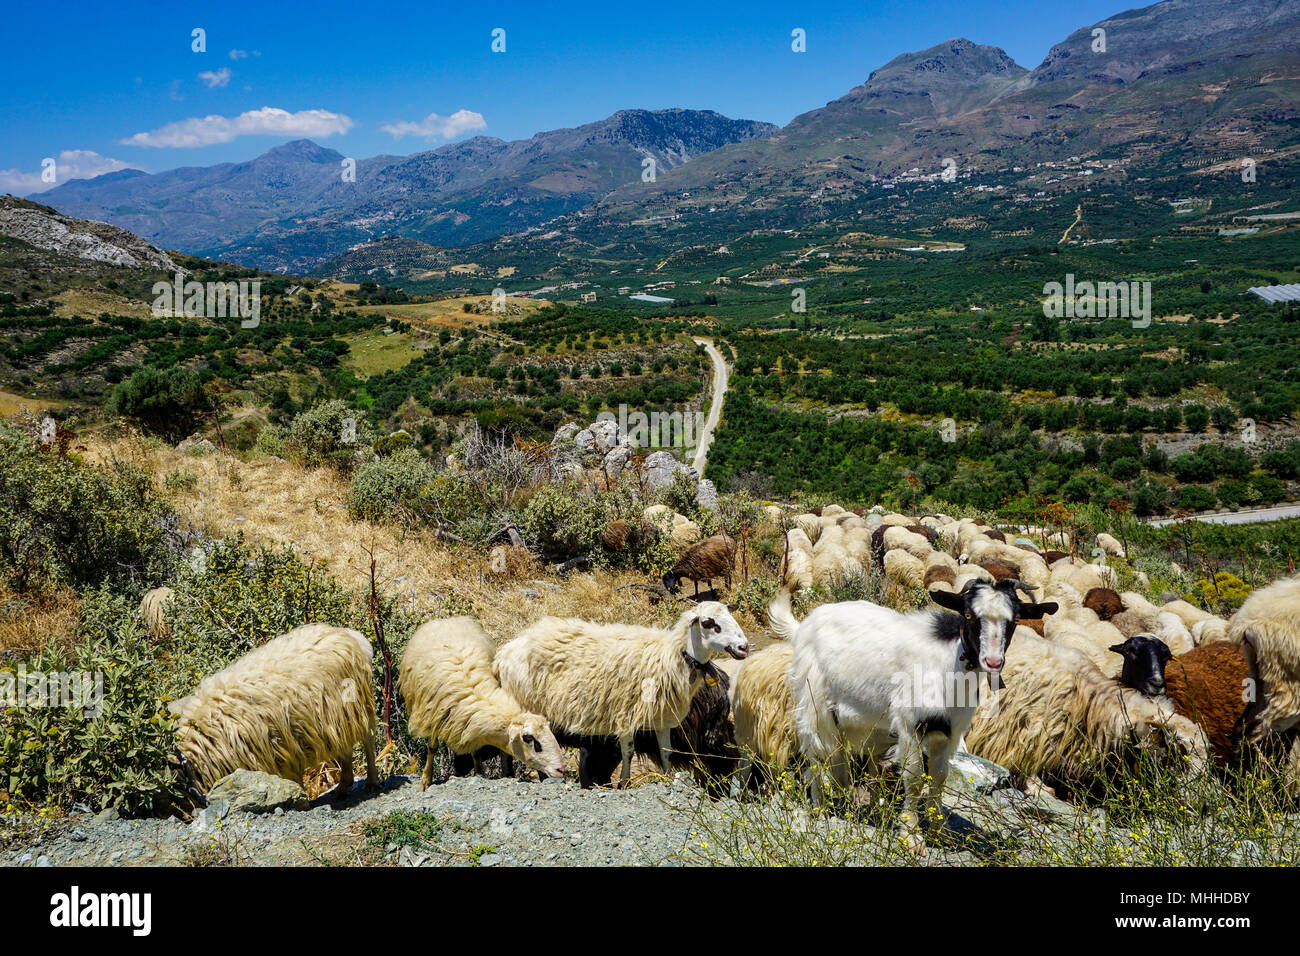 Herd of goats overlooking scenic valley in southern Crete near Lefkogia Stock Photo